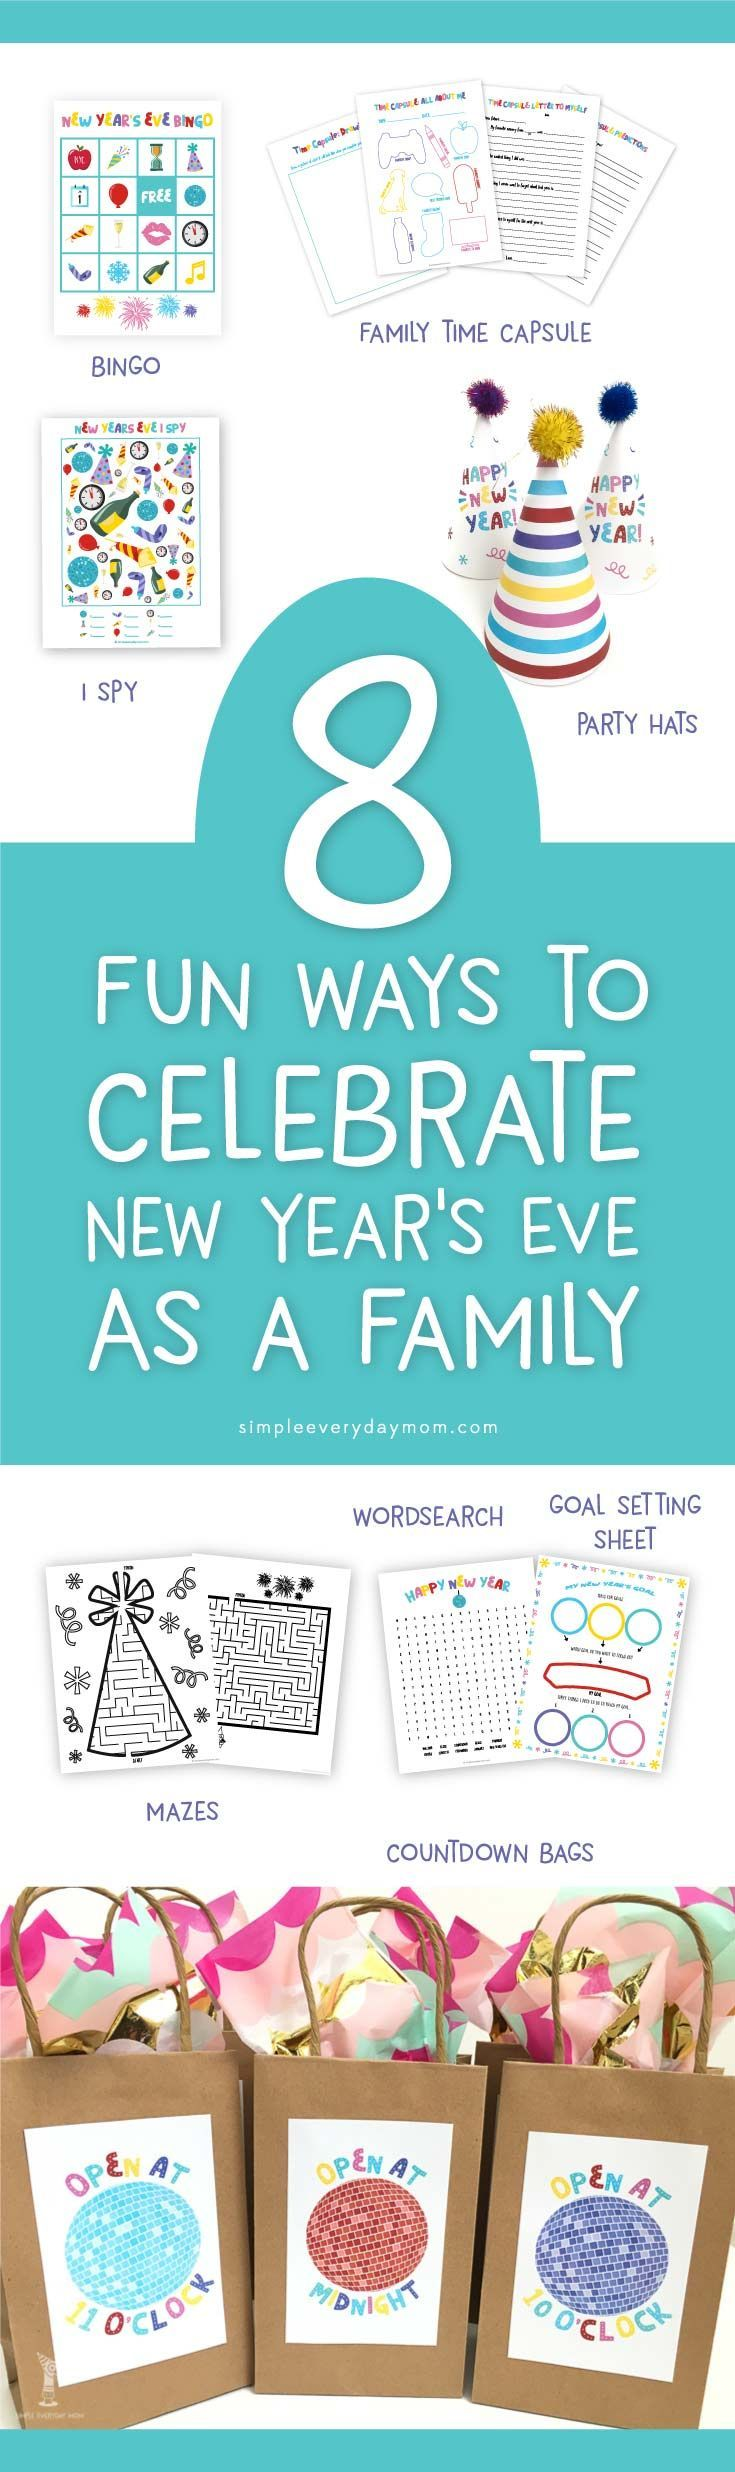 77 best Celebrations - Happy Noon Year images on Pinterest | New ...